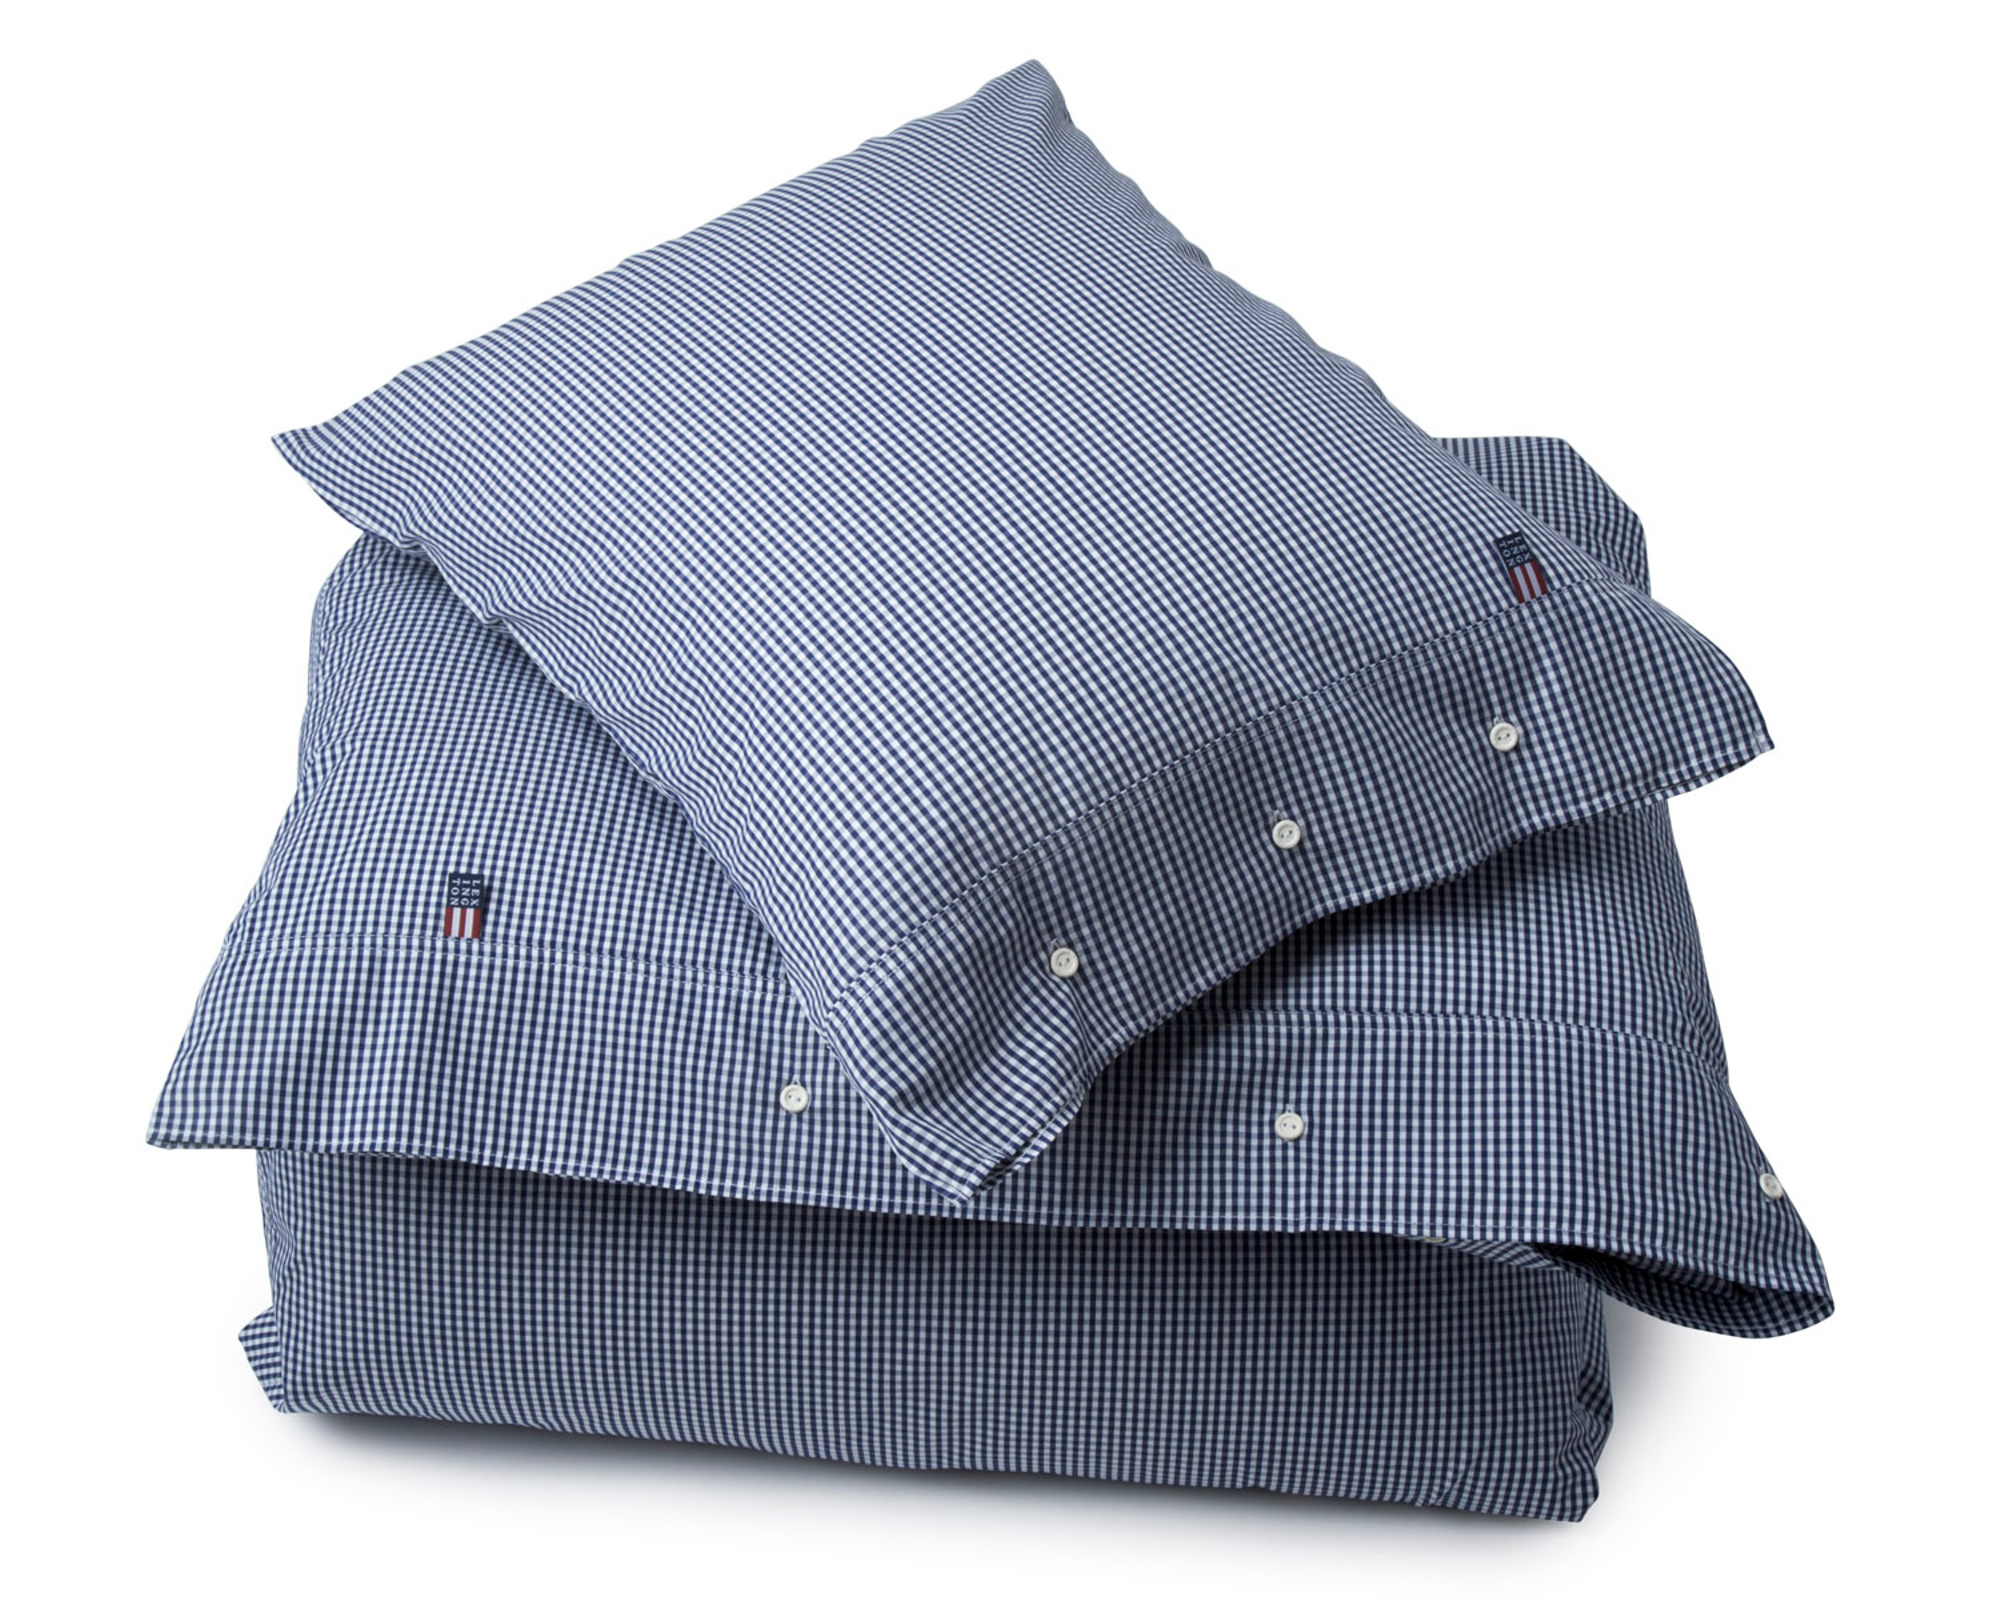 Seaside Navy Check Flat Sheet